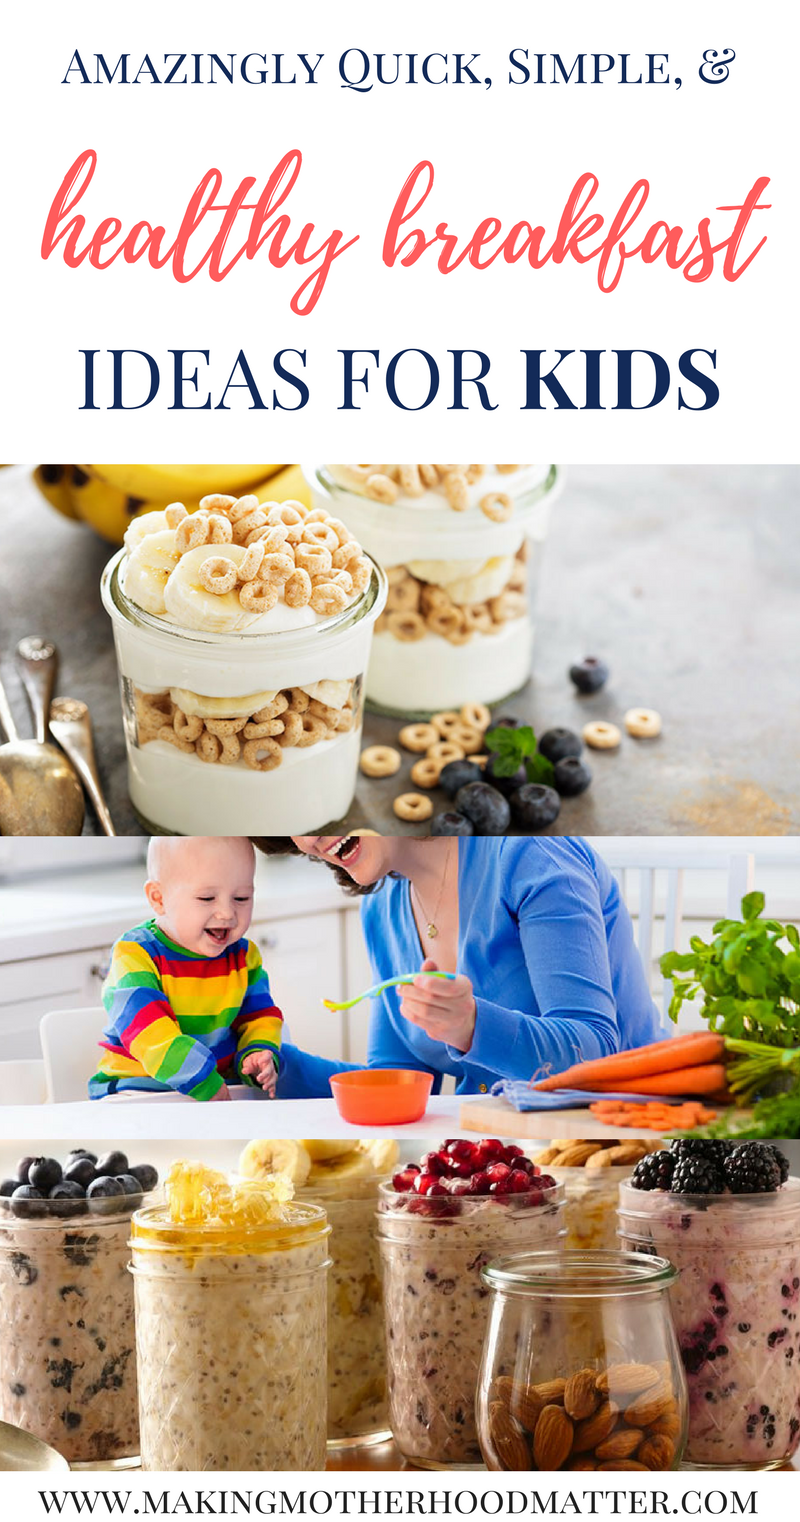 Breakfast is the most important meal the day, but is your child eating a healthy breakfast? Here are five quick and healthy breakfast ideas for kids. Click the link or visit www.makingmotherhoodmatter.com to discover all five quick breakfast for kids recipes that can be made in under 20 minutes.